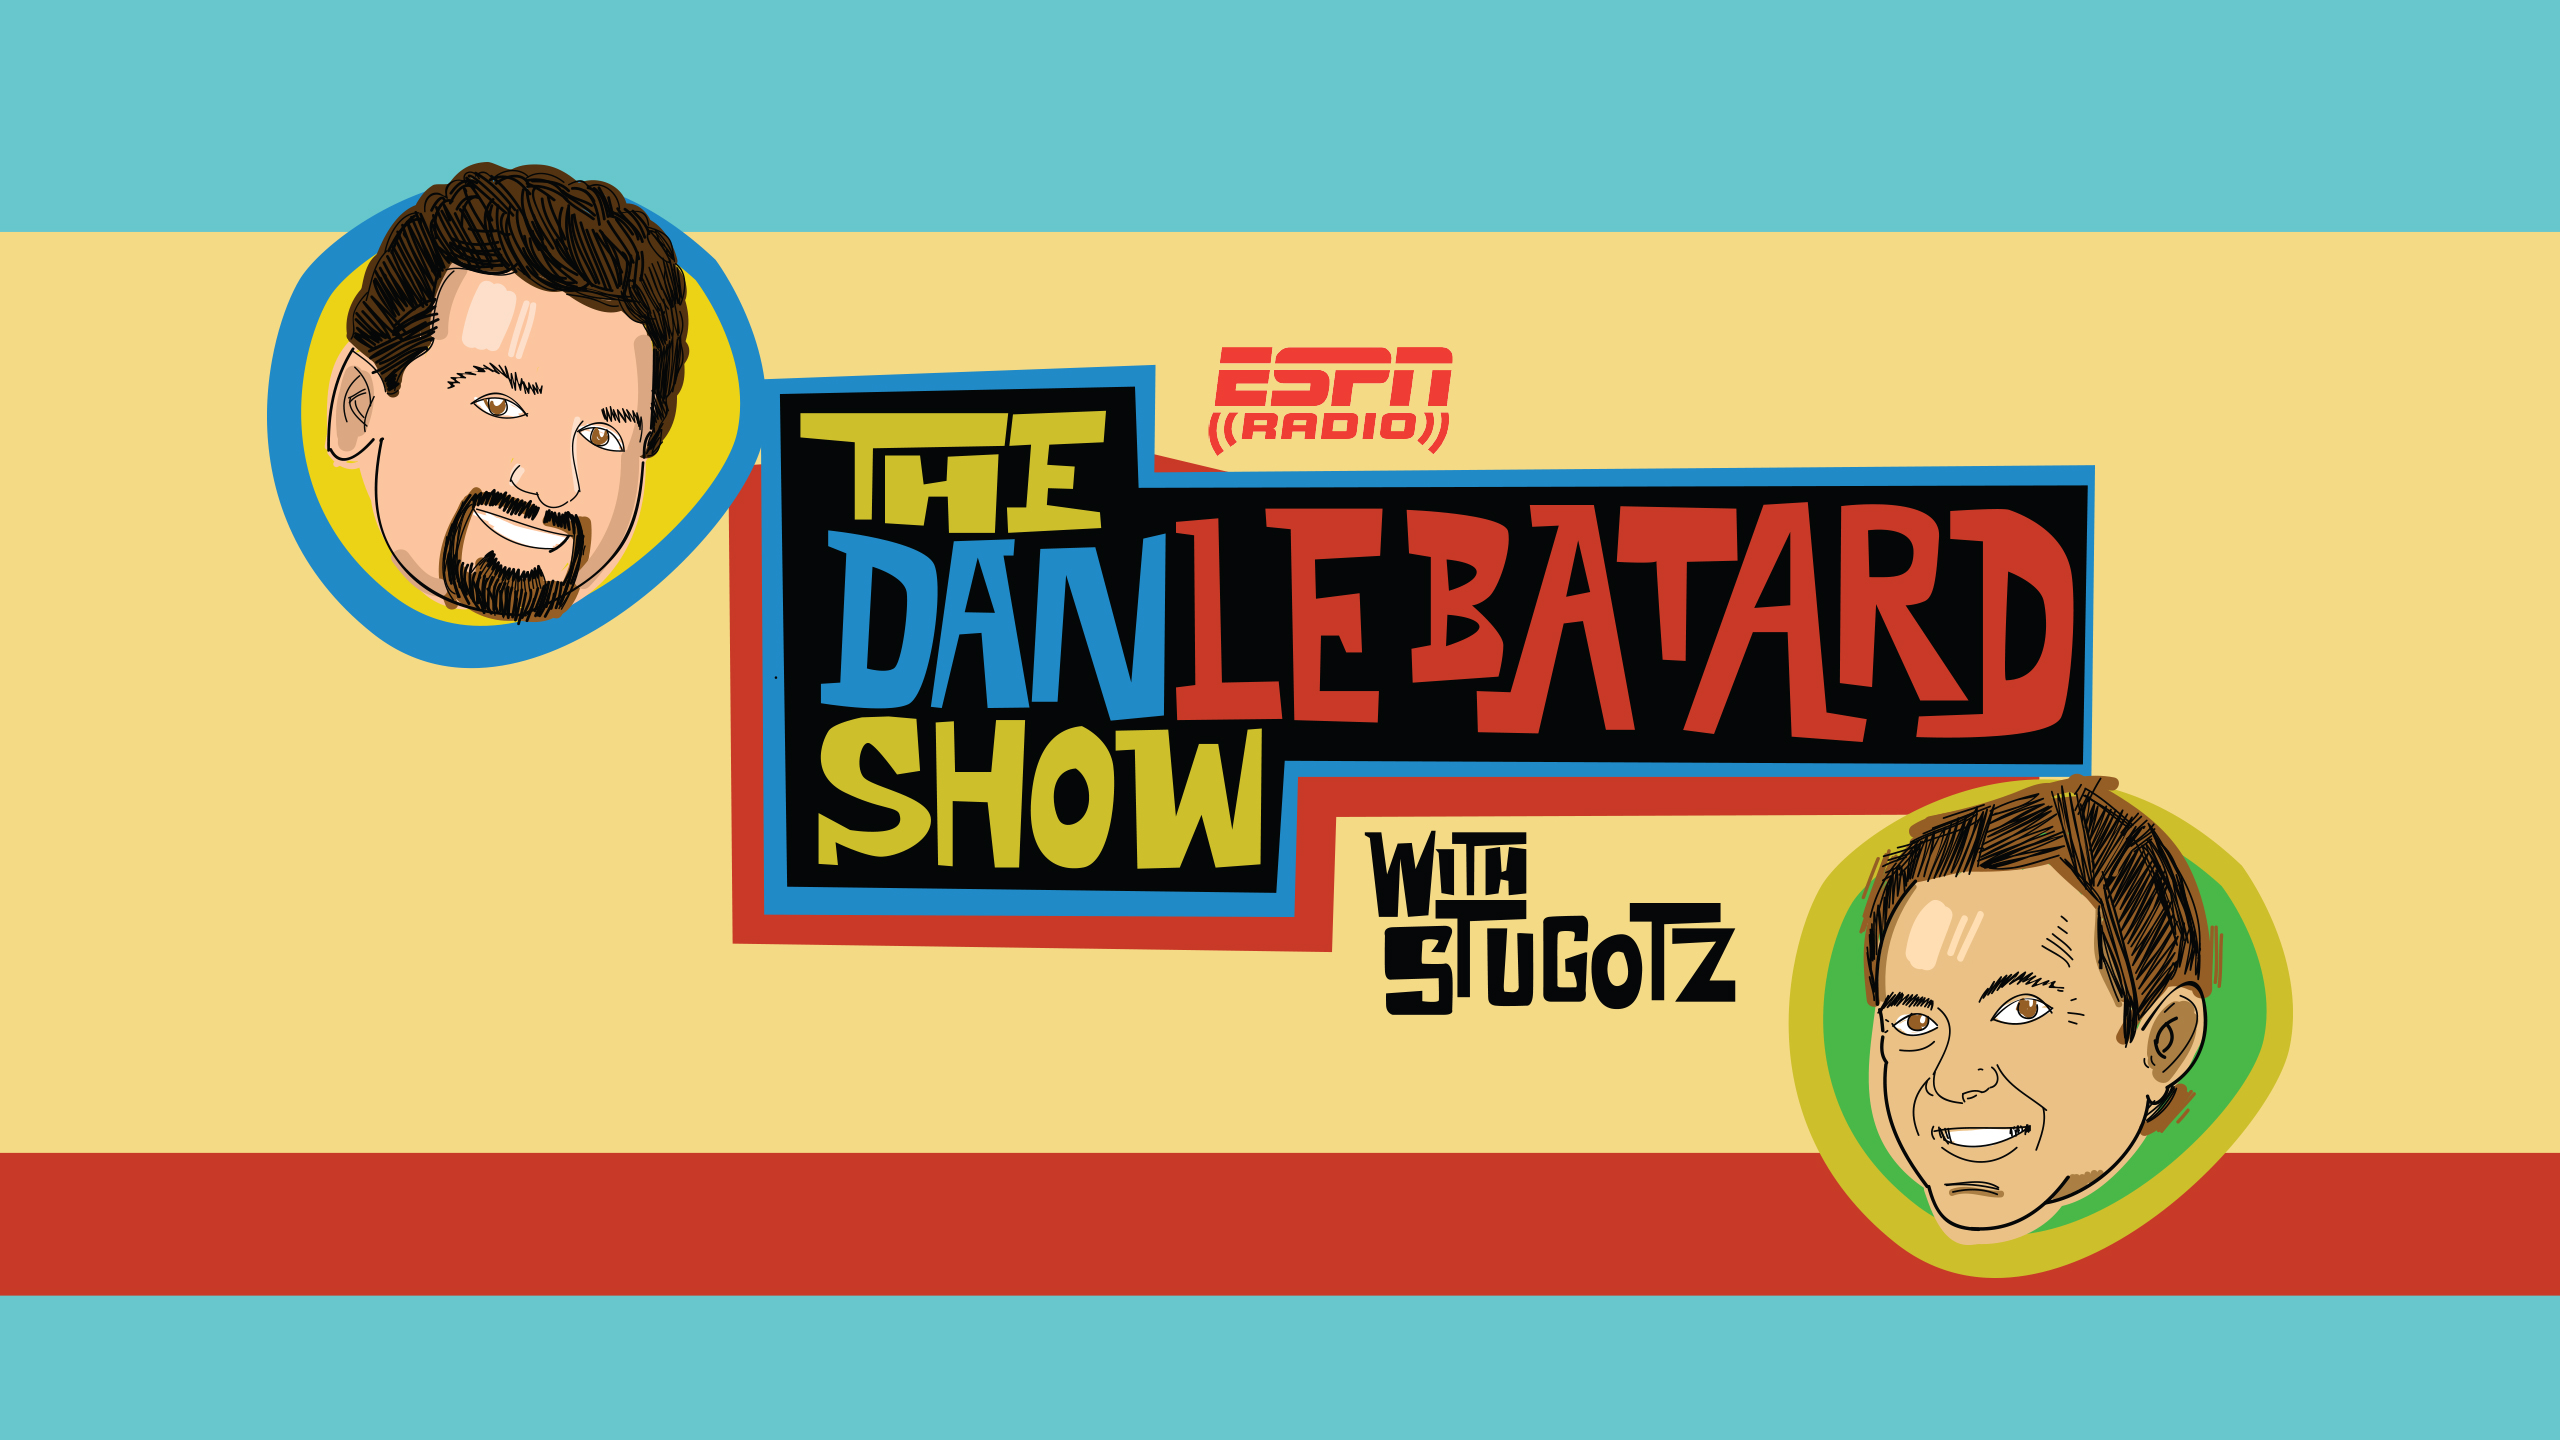 Fri, 9/21 - The Dan Le Batard Show with Stugotz Presented by Progressive